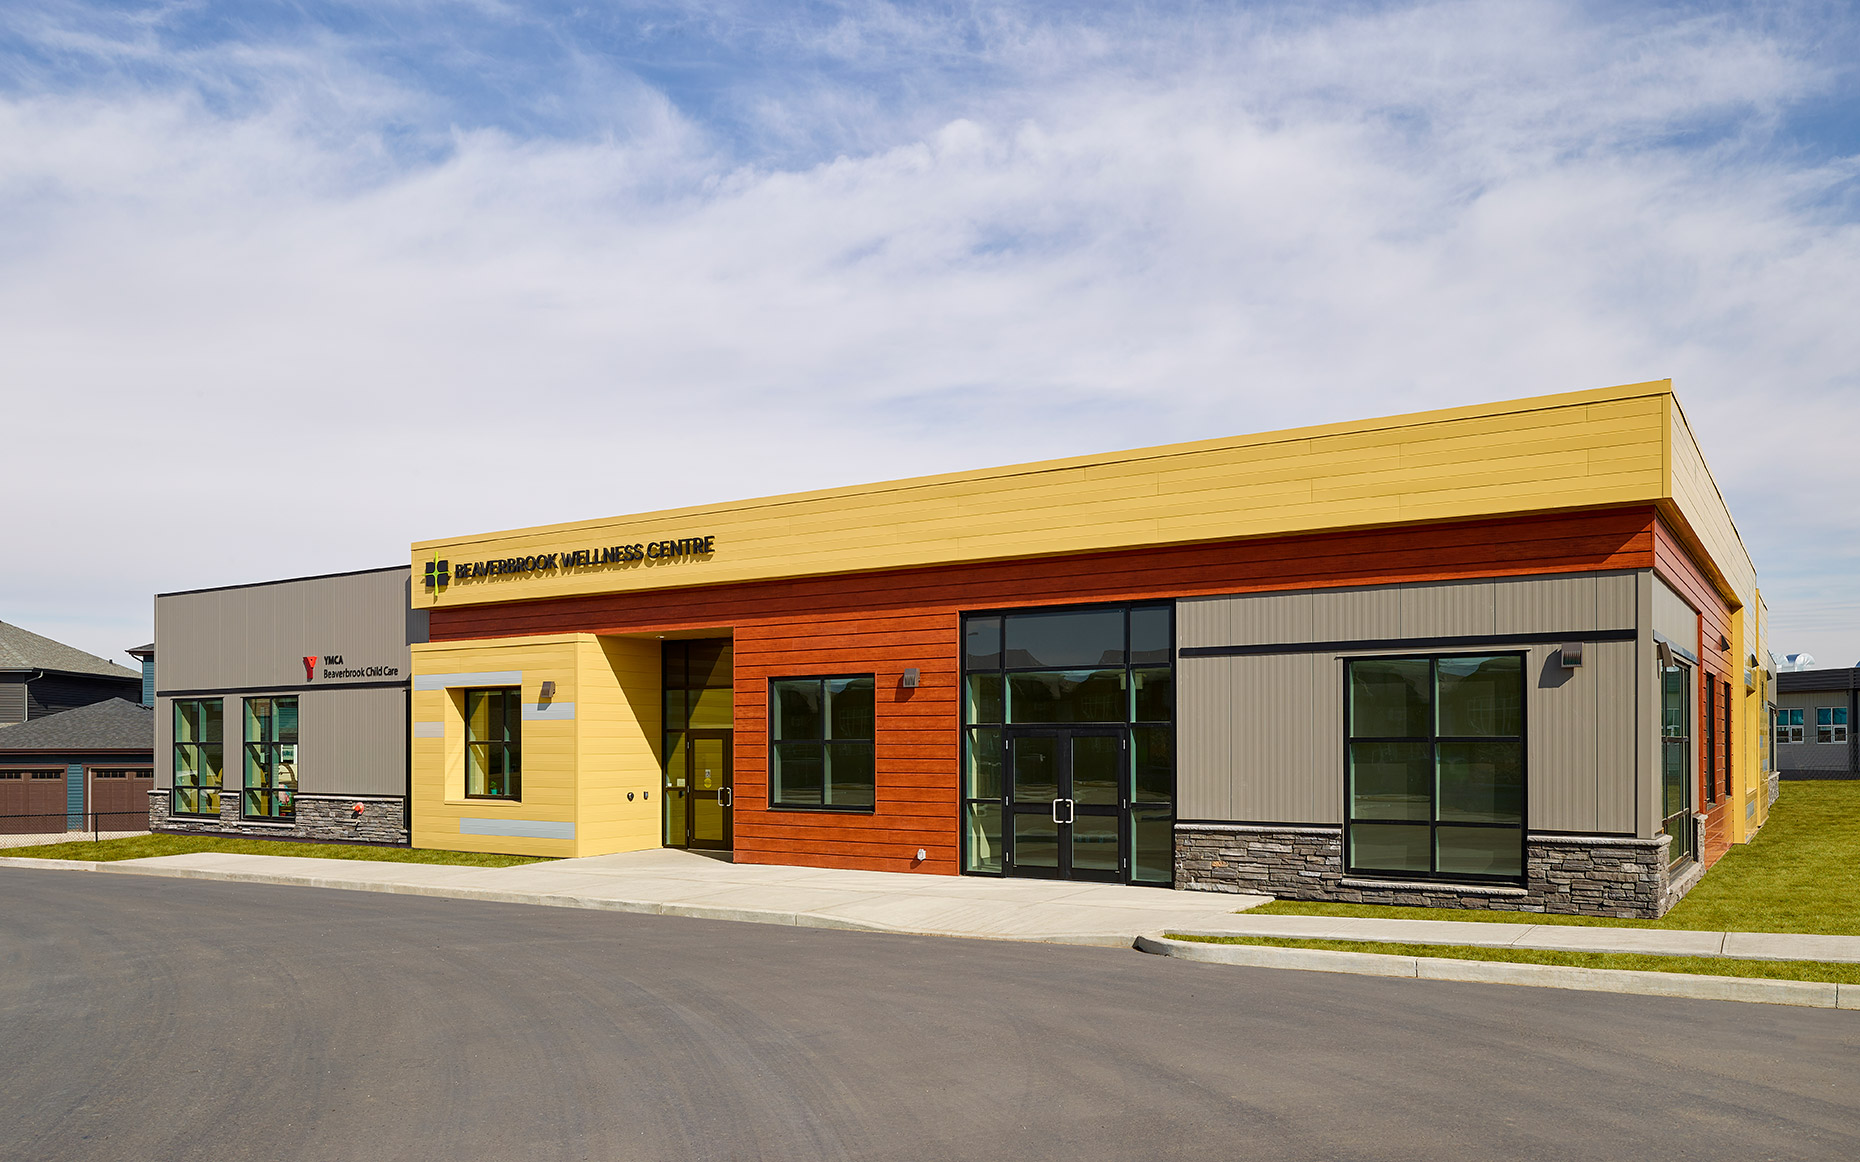 Beaverbrook Wellness Centre YMCA Child Care in Spruce Grove, Alberta - Christophe Benard Photography, Edmonton Architectural Photographer, Edmonton Architectural Photography